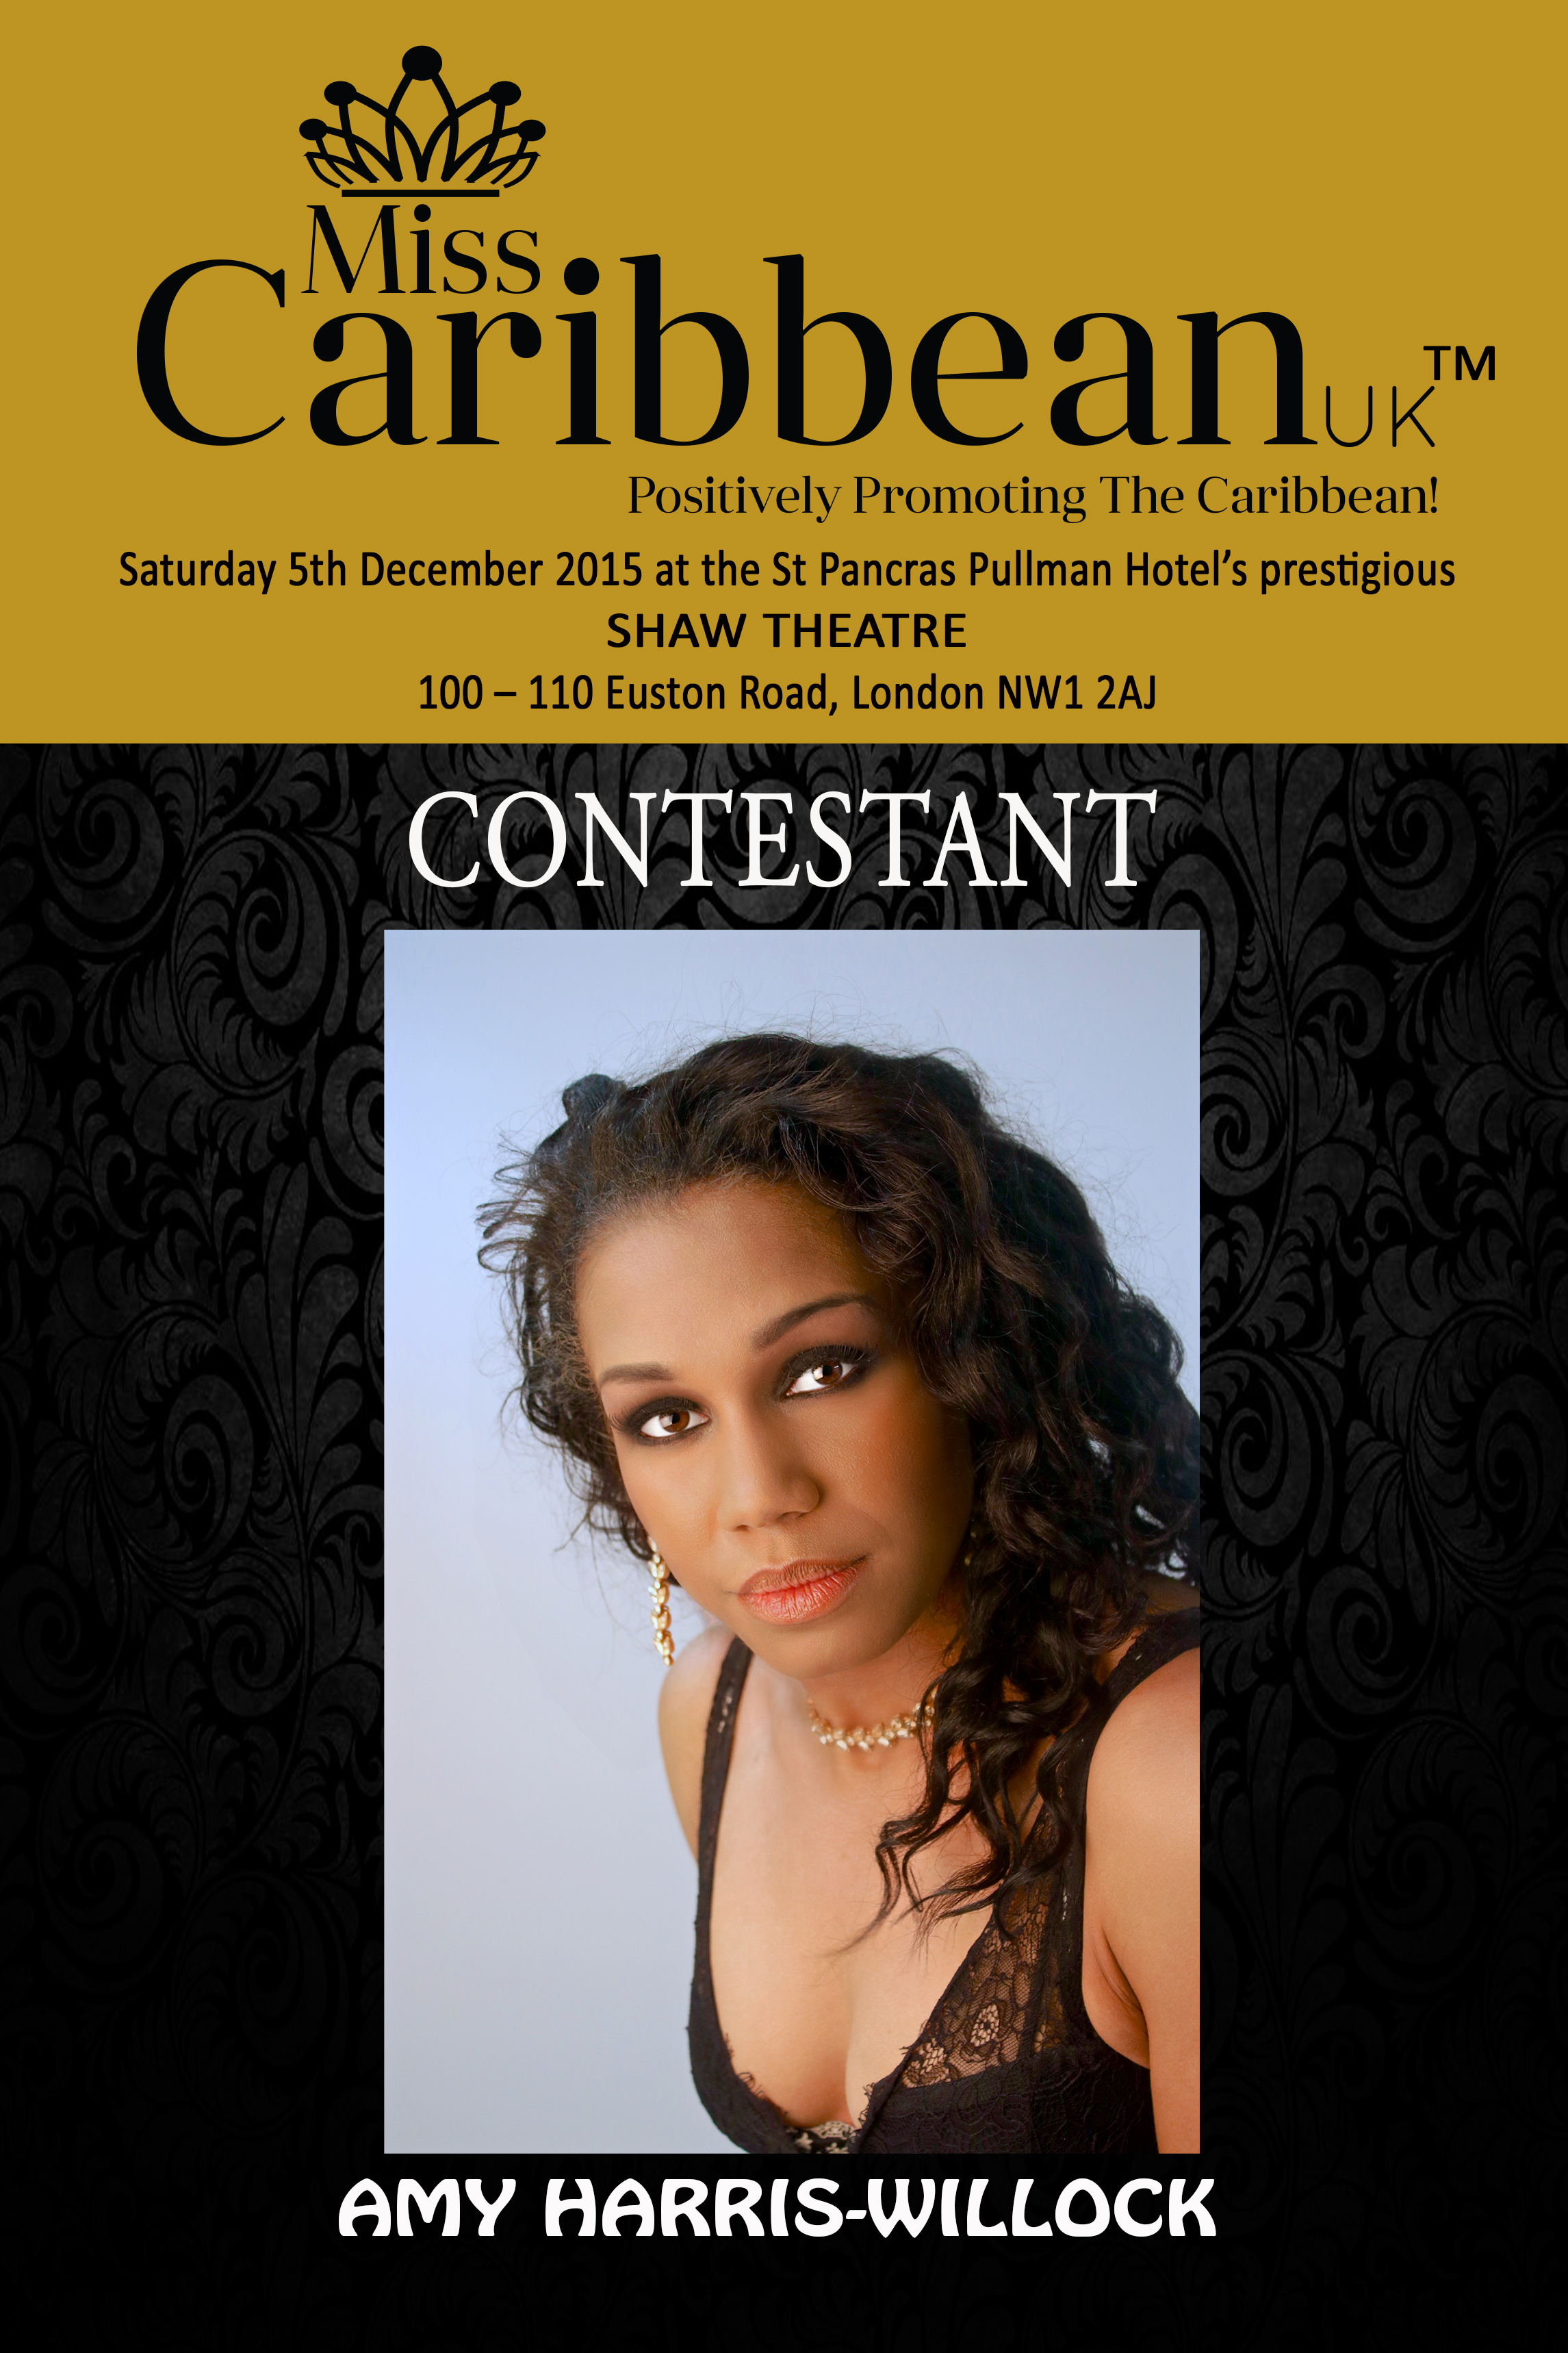 CONTESTANT - Amy Harris-Willock.